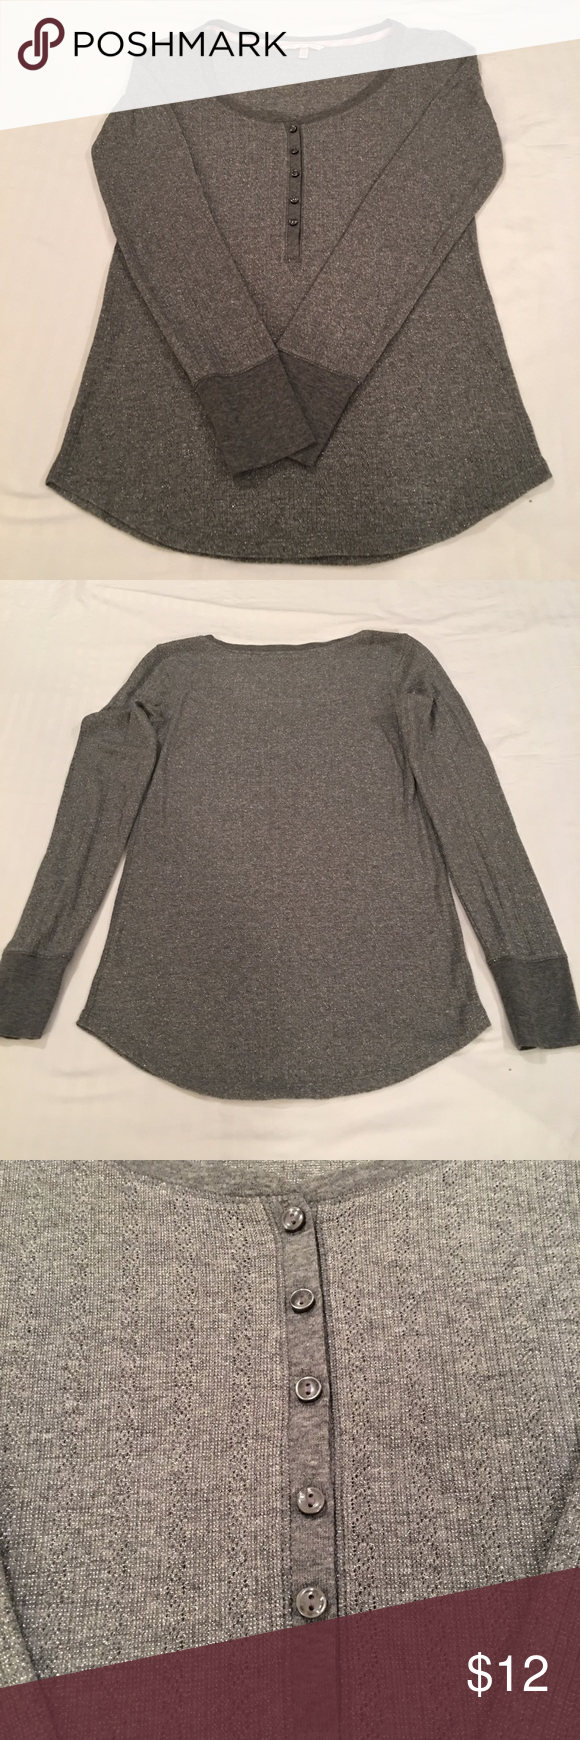 Victoria's Secret Henley Tee Perfect to wear with pj bottoms. Gray color with hints of silver threads running through it. Simply adorable! Super great condition! Victoria's Secret Tops Tees - Long Sleeve